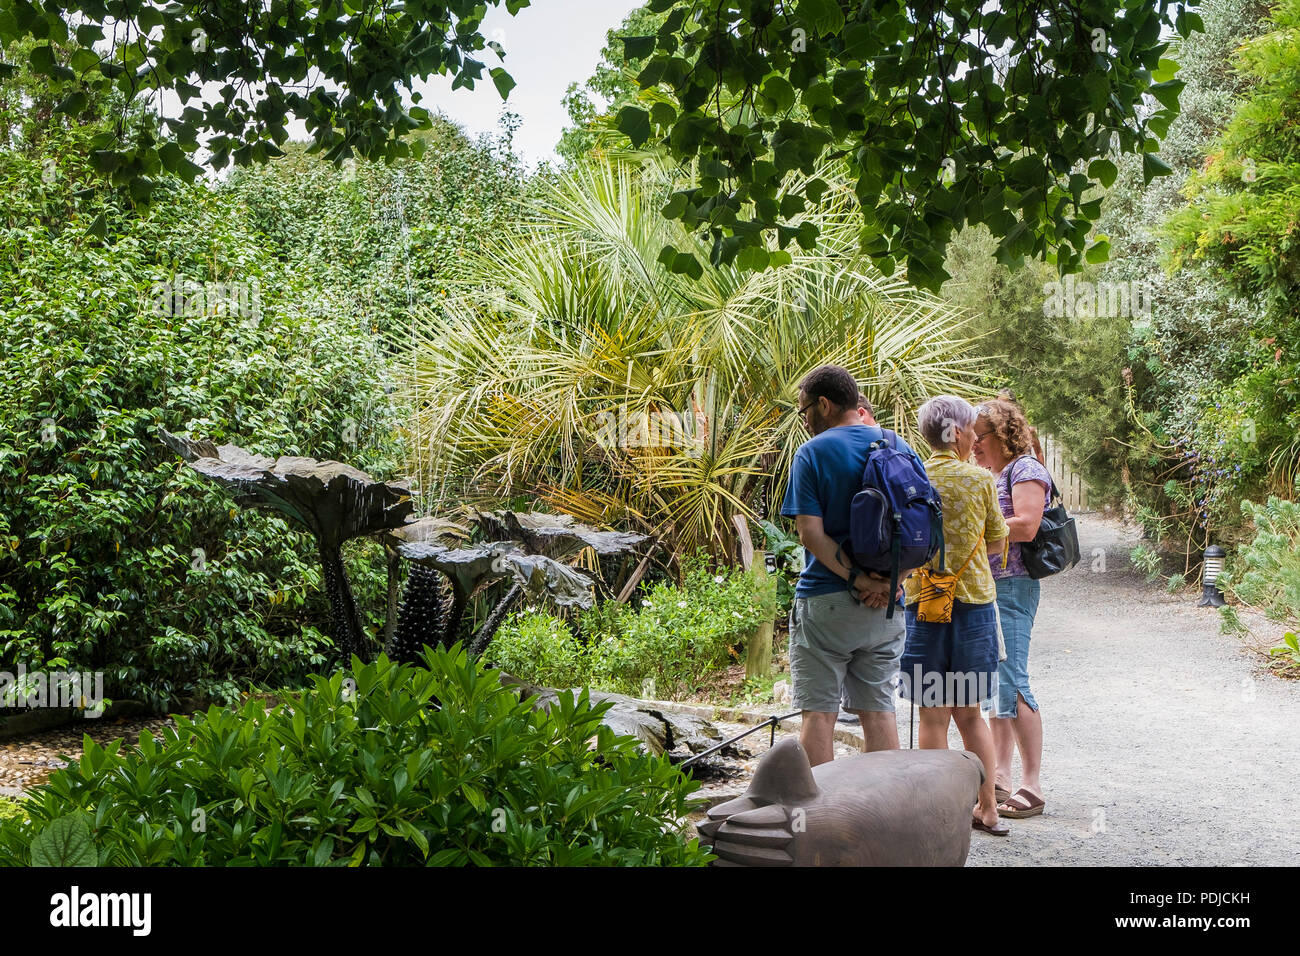 Visitors enjoying their visit to Trebah Garden in Cornwall. - Stock Image